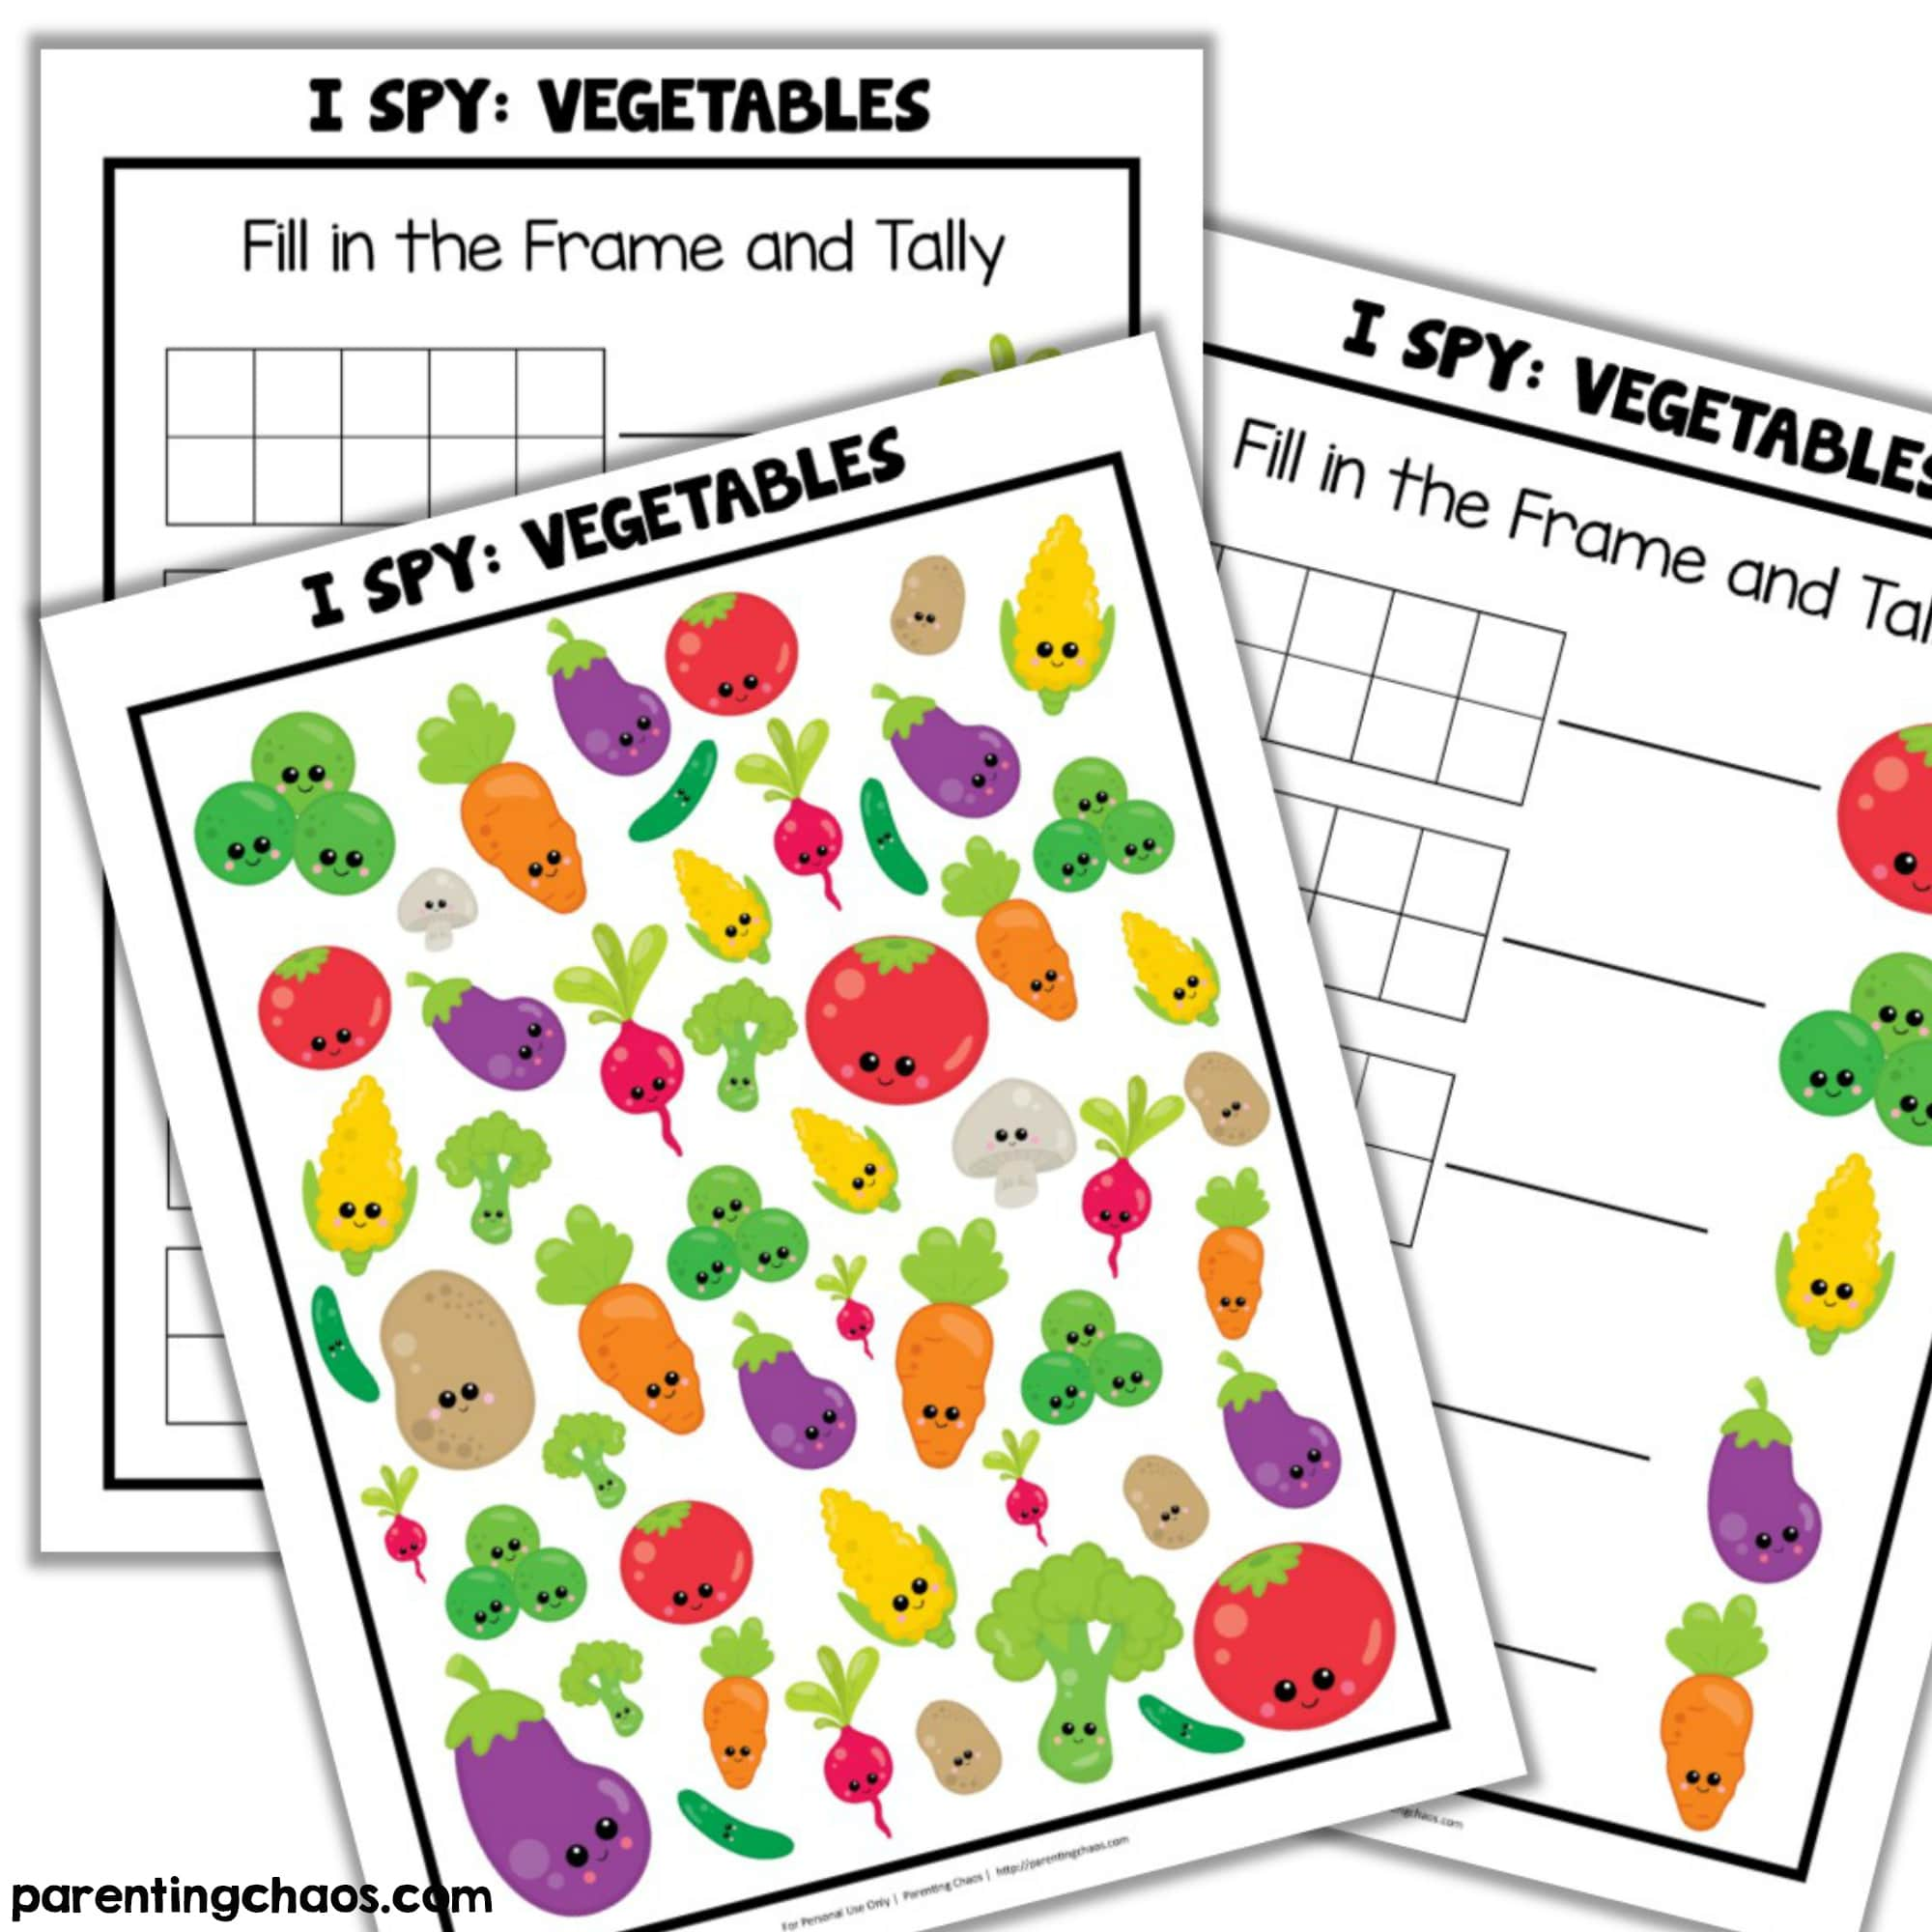 picture regarding Vegetable Printable referred to as Veggies I Spy Printable ⋆ Parenting Chaos